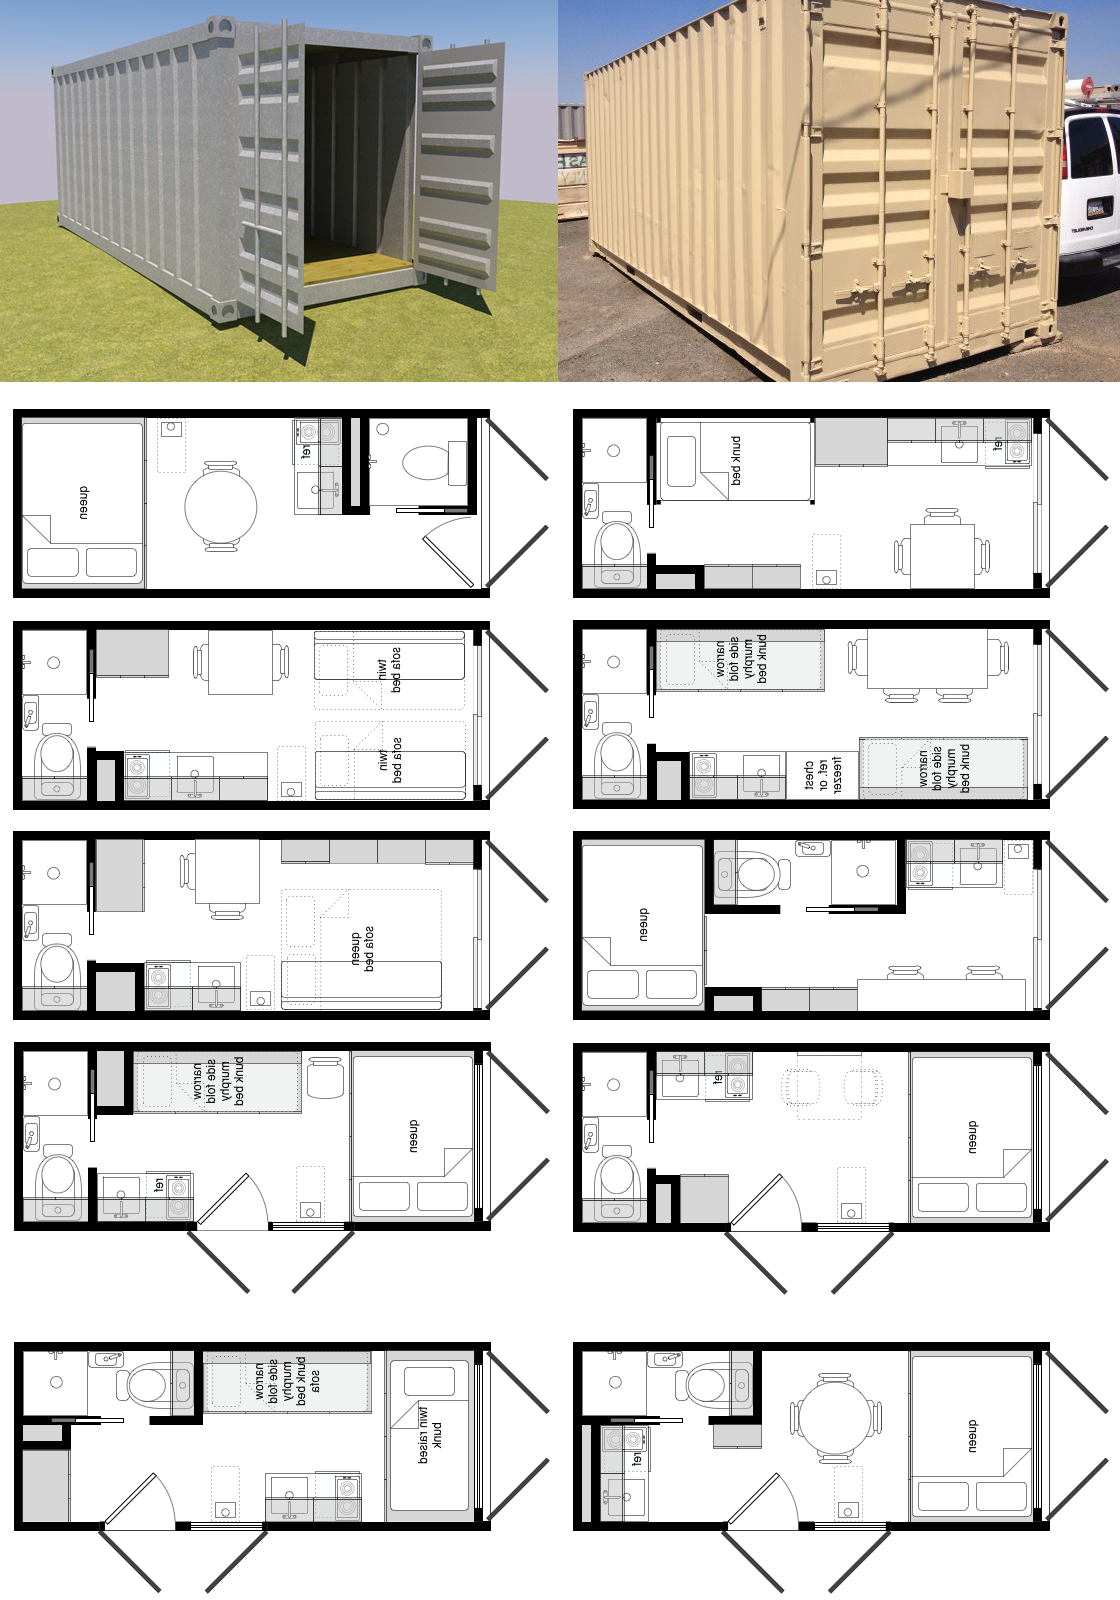 20 Foot Shipping Container Floor Plan Brainstorm Tiny House Living Floor Plans For Shipping Container Homes Backgrounds Container Houses Building A Contain